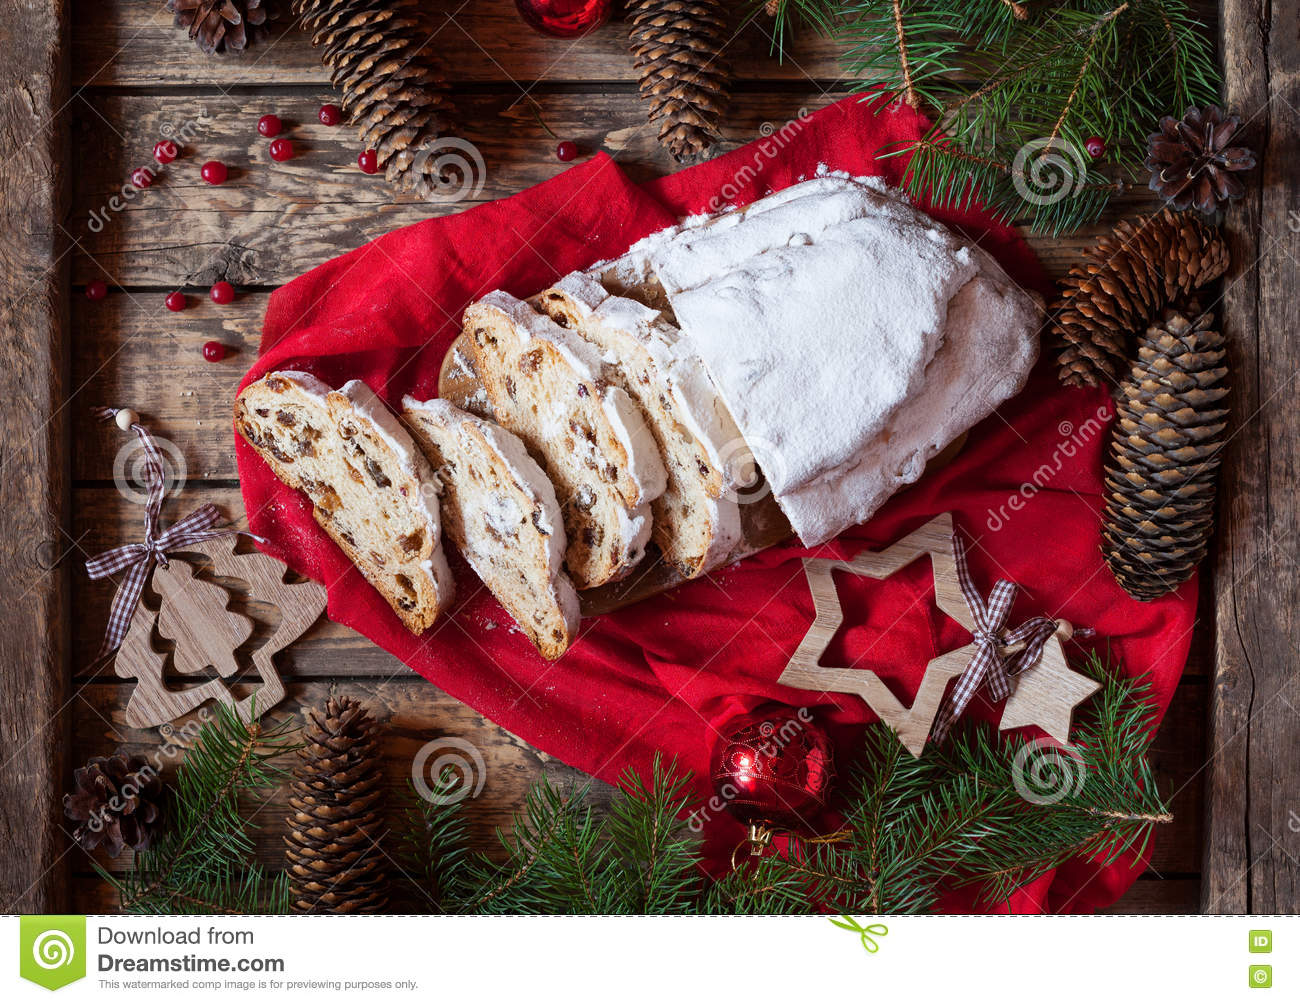 Traditional german christmas decorations - Traditional Dresdner German Christmas Cake Stollen With Raising Berries And Nuts Holiday Xmas Decorations